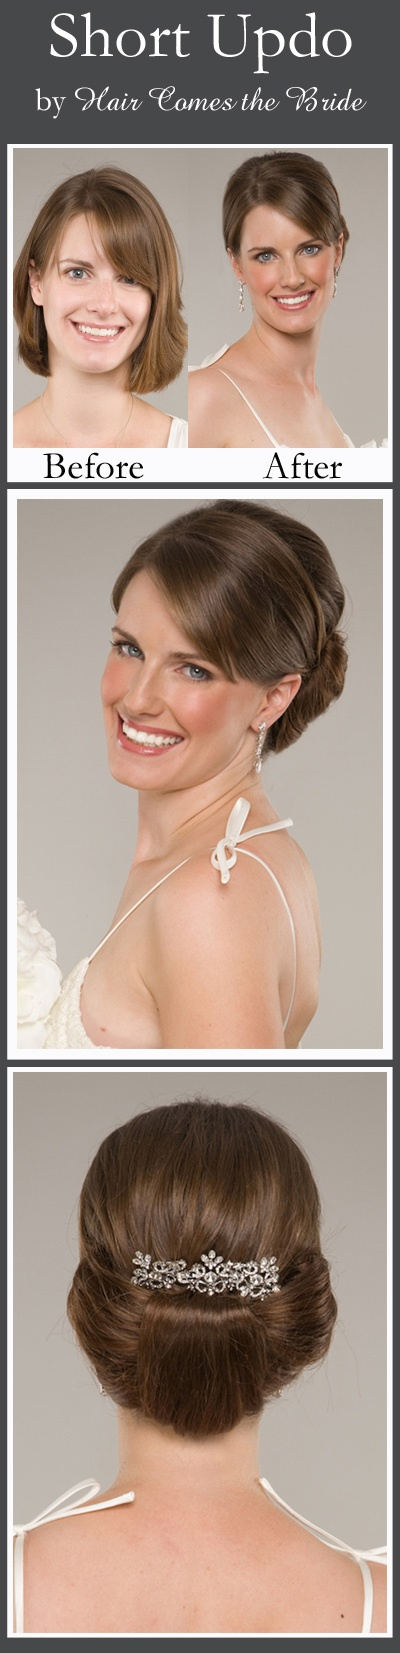 White and Gold Wedding. Bridesmaid Hair. Short Updo by Hair Comes the Bride